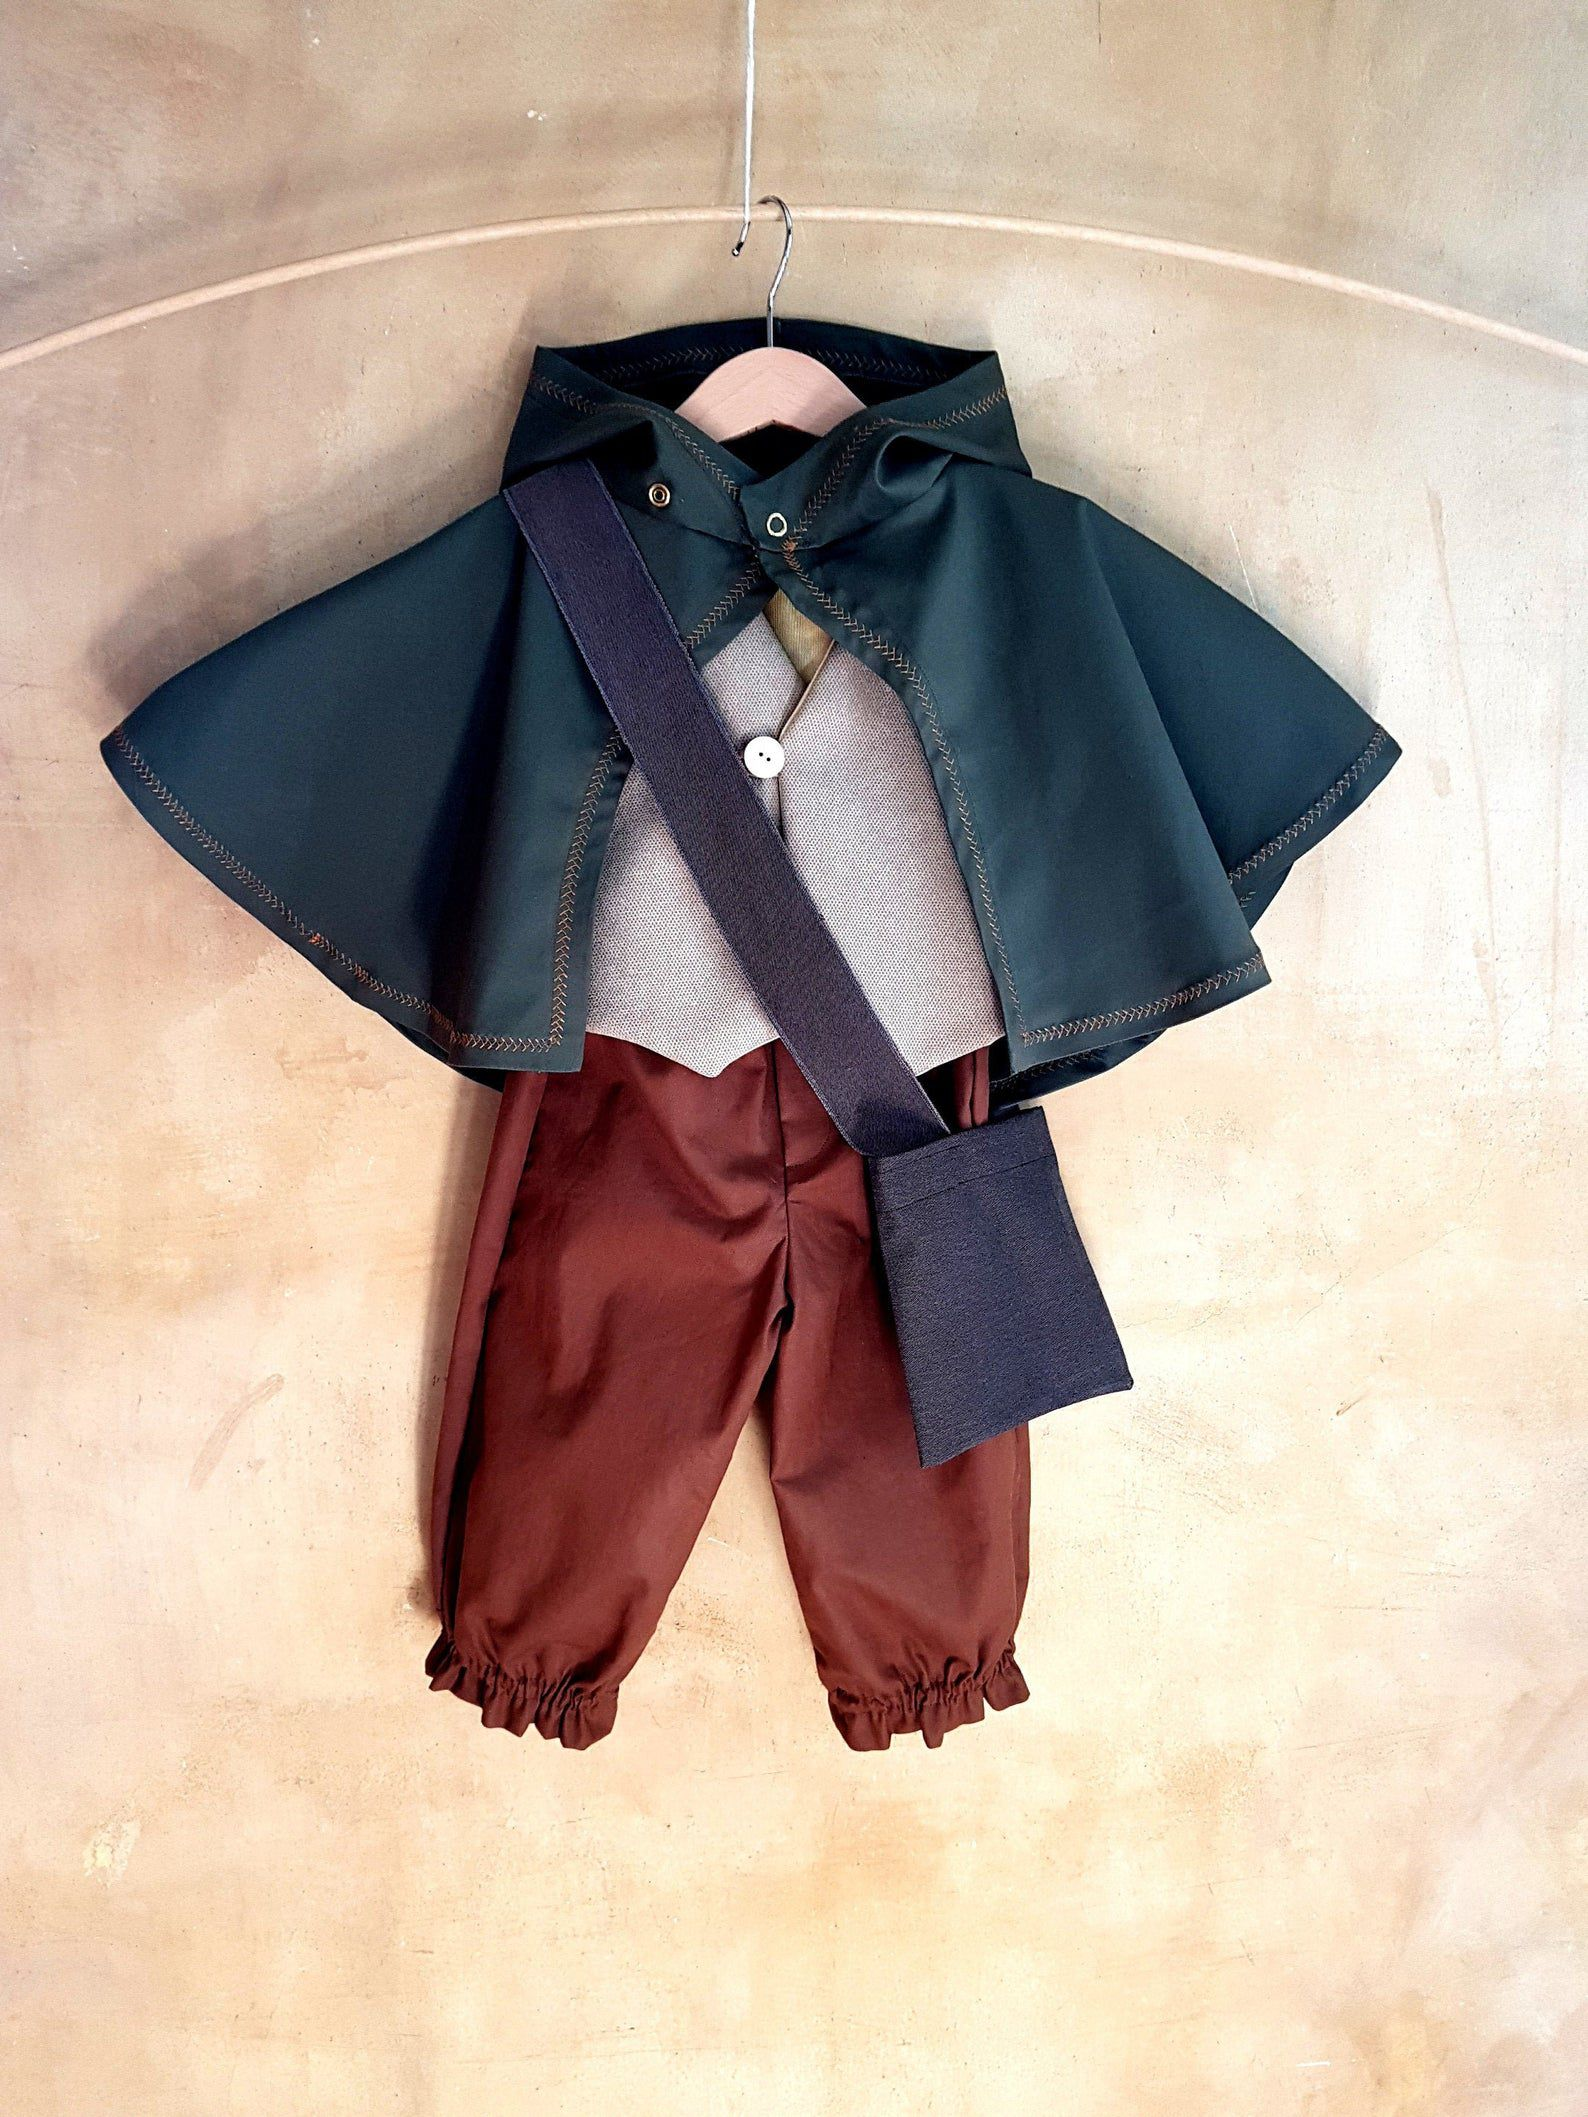 Image of a Hobbit costume.